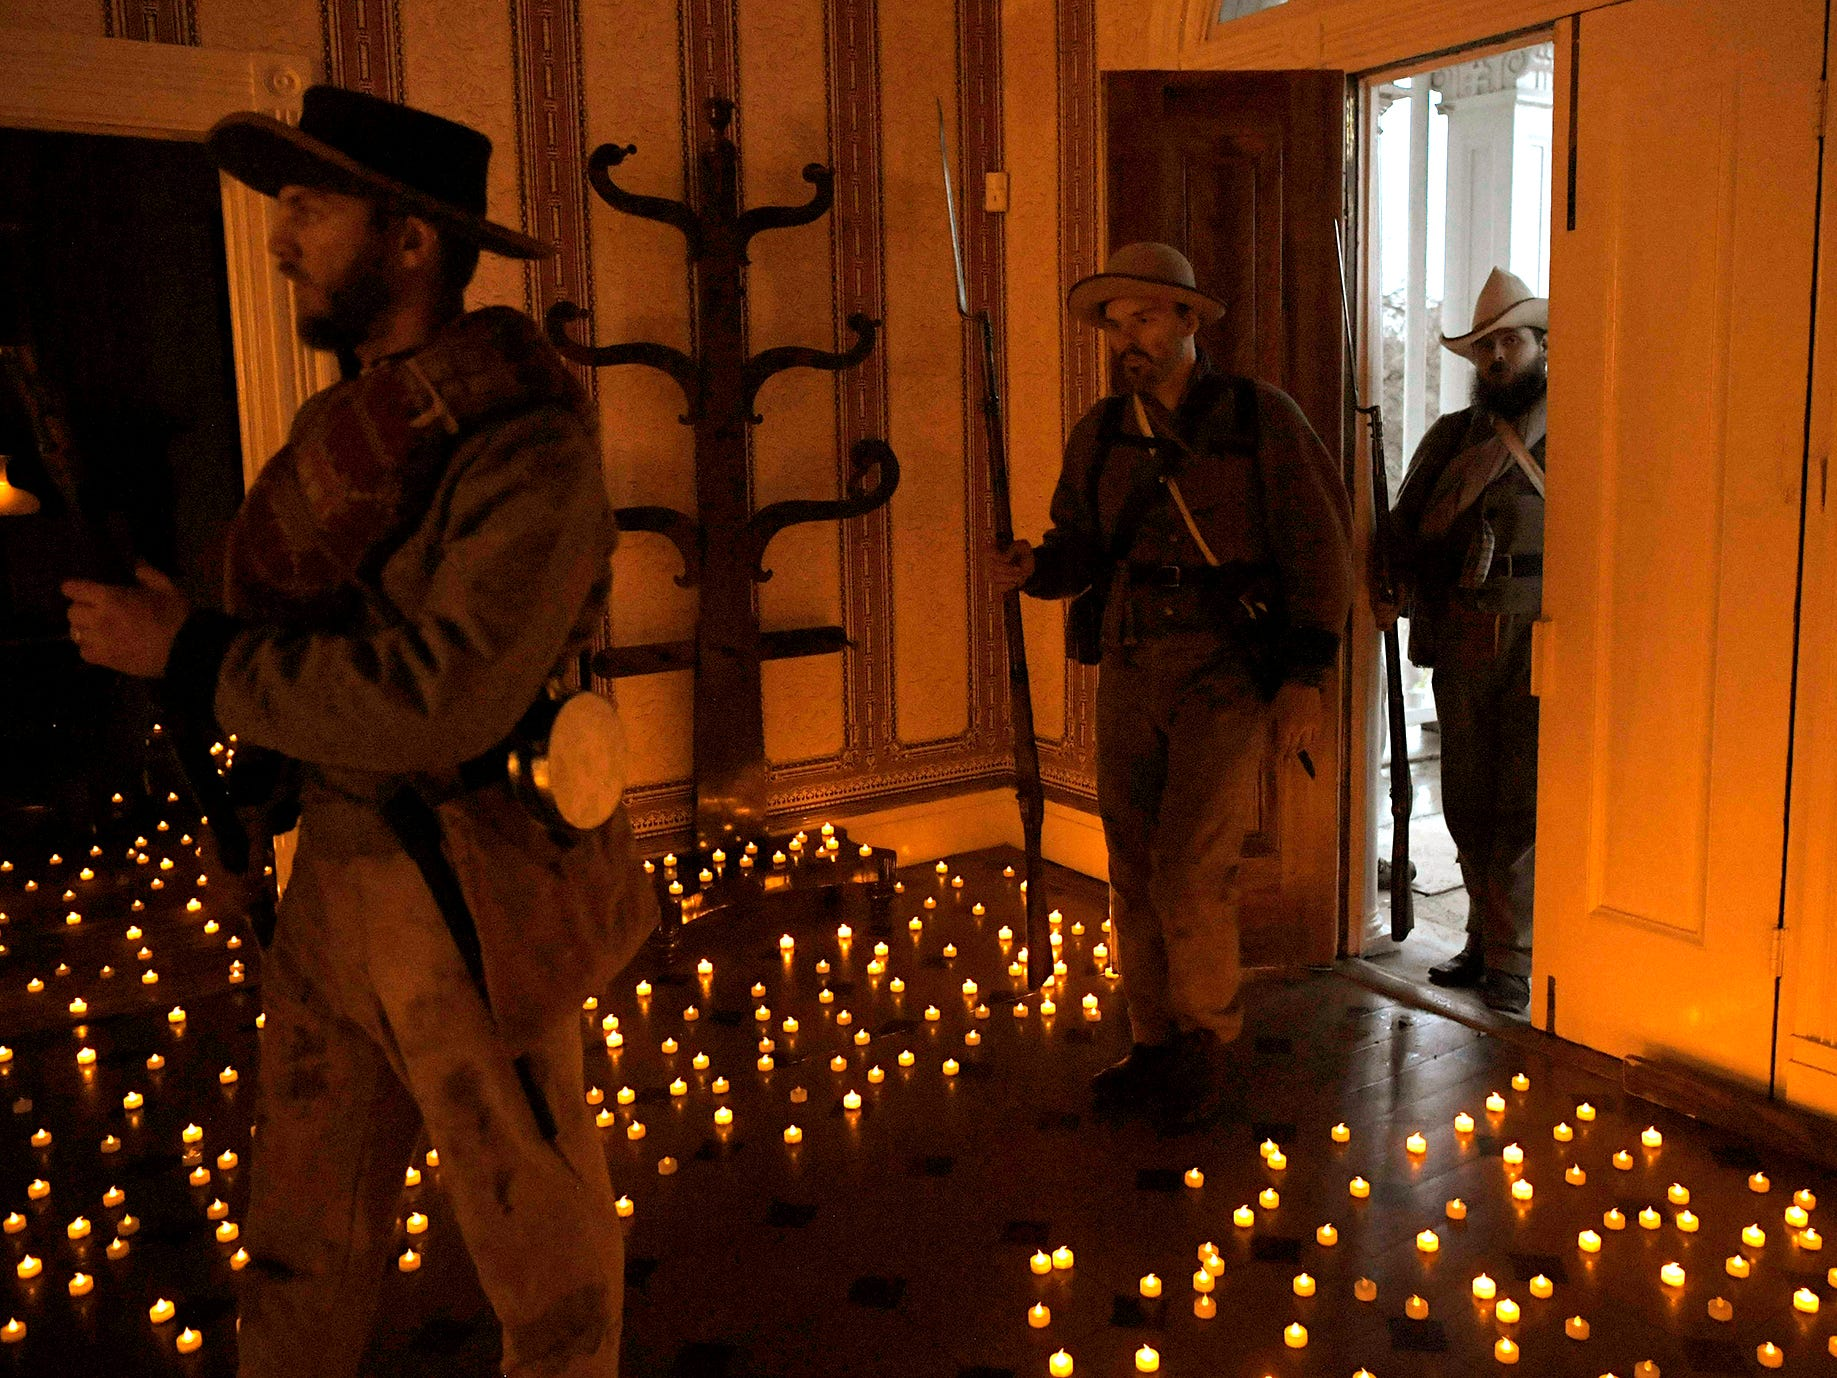 Civil War reenactors walks through Carnton as candles were displayed  in the Civil War period home for the 154th anniversary of the Battle of Franklin on Friday, Nov. 30, 2018.